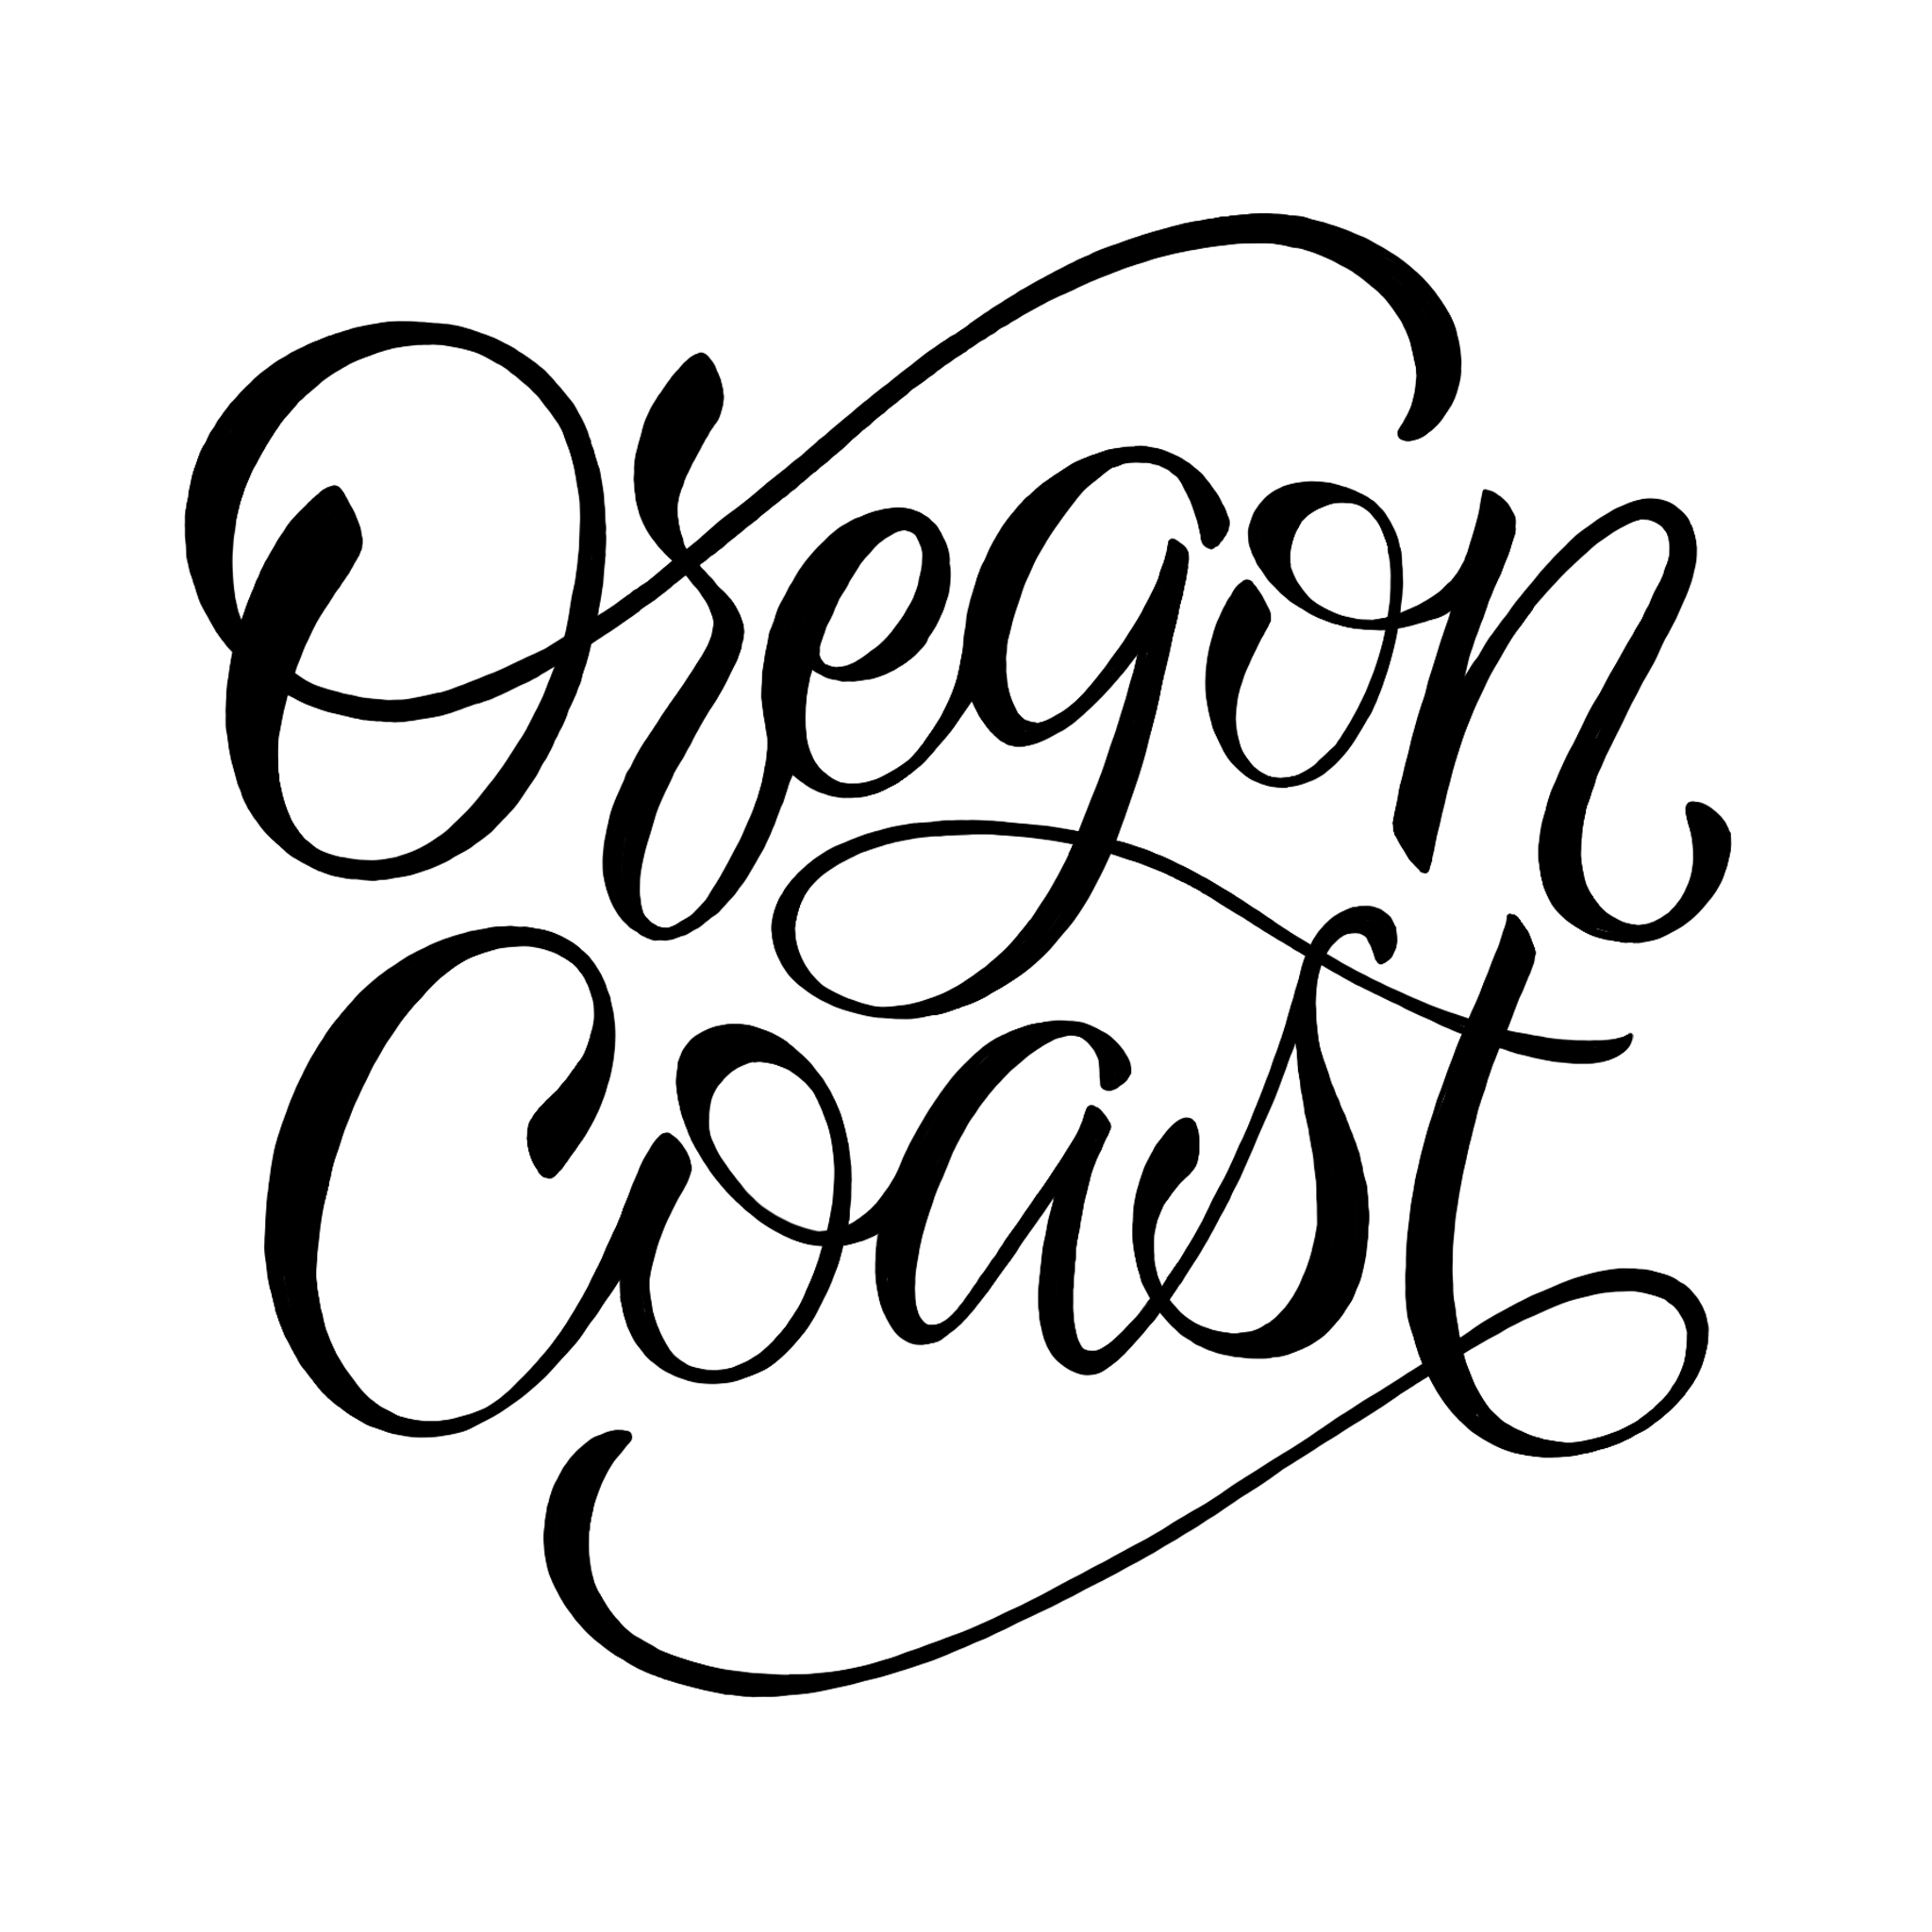 Oregon Coast lettering